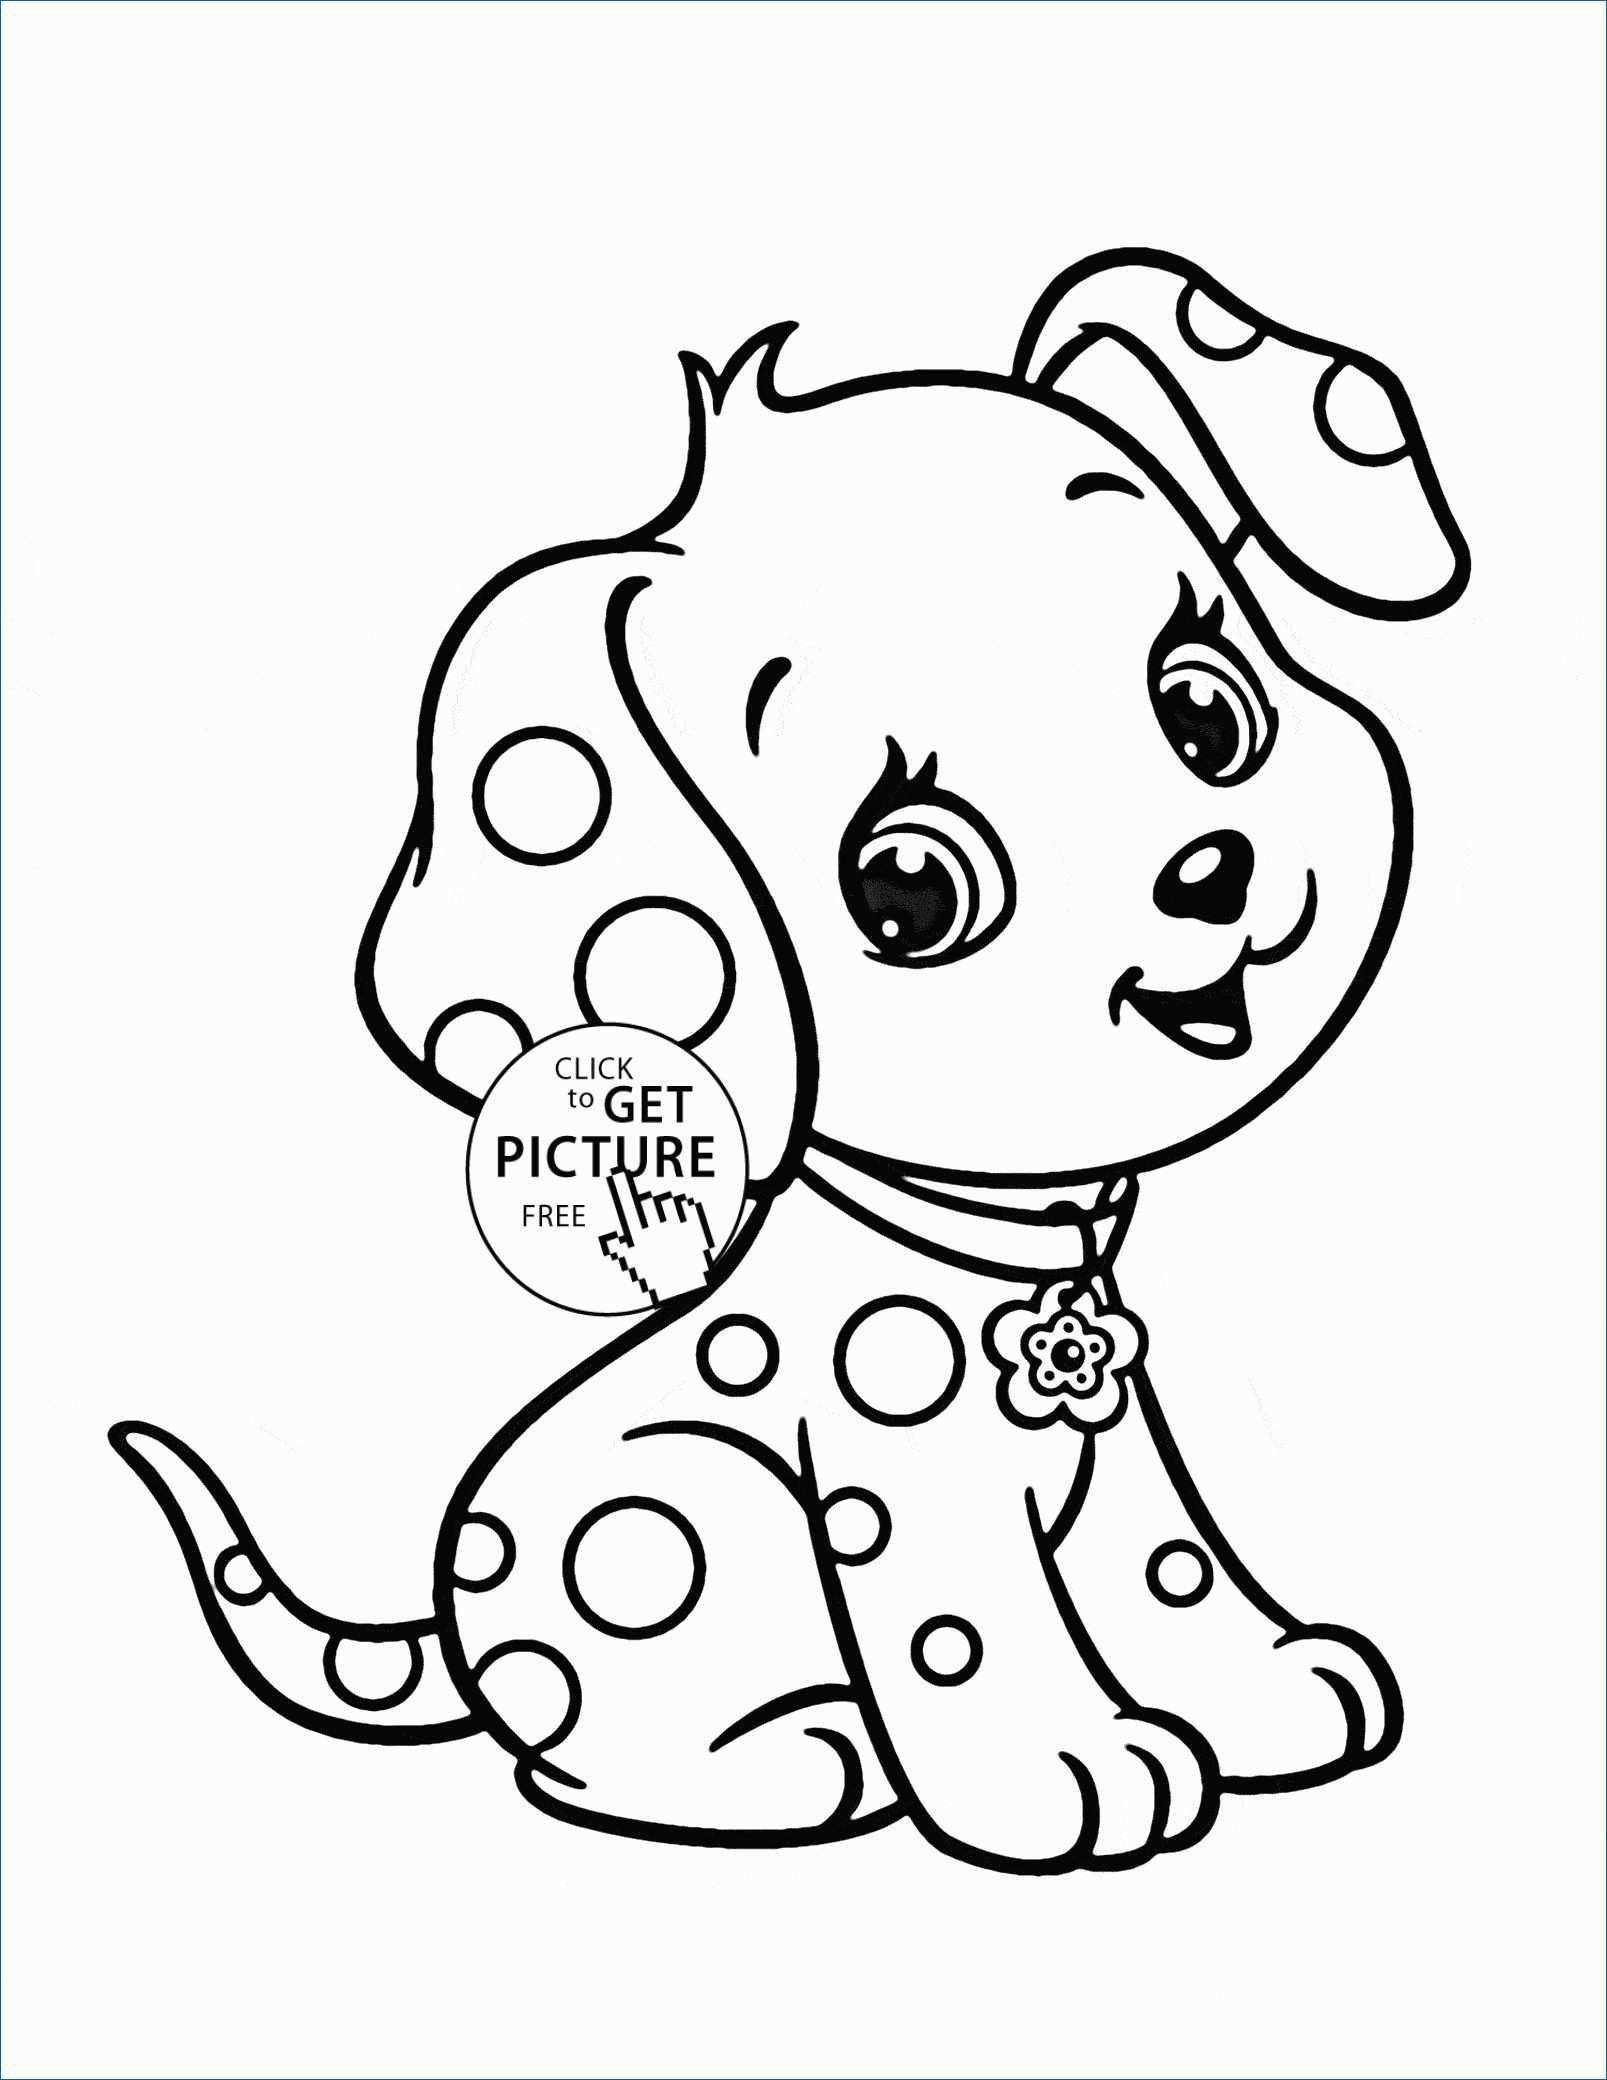 Girl Coloring Pages For Kids Coloring Pages Coloring Book For Girls Toint Out Unicorn Coloring Pages Animal Coloring Pages Puppy Coloring Pages